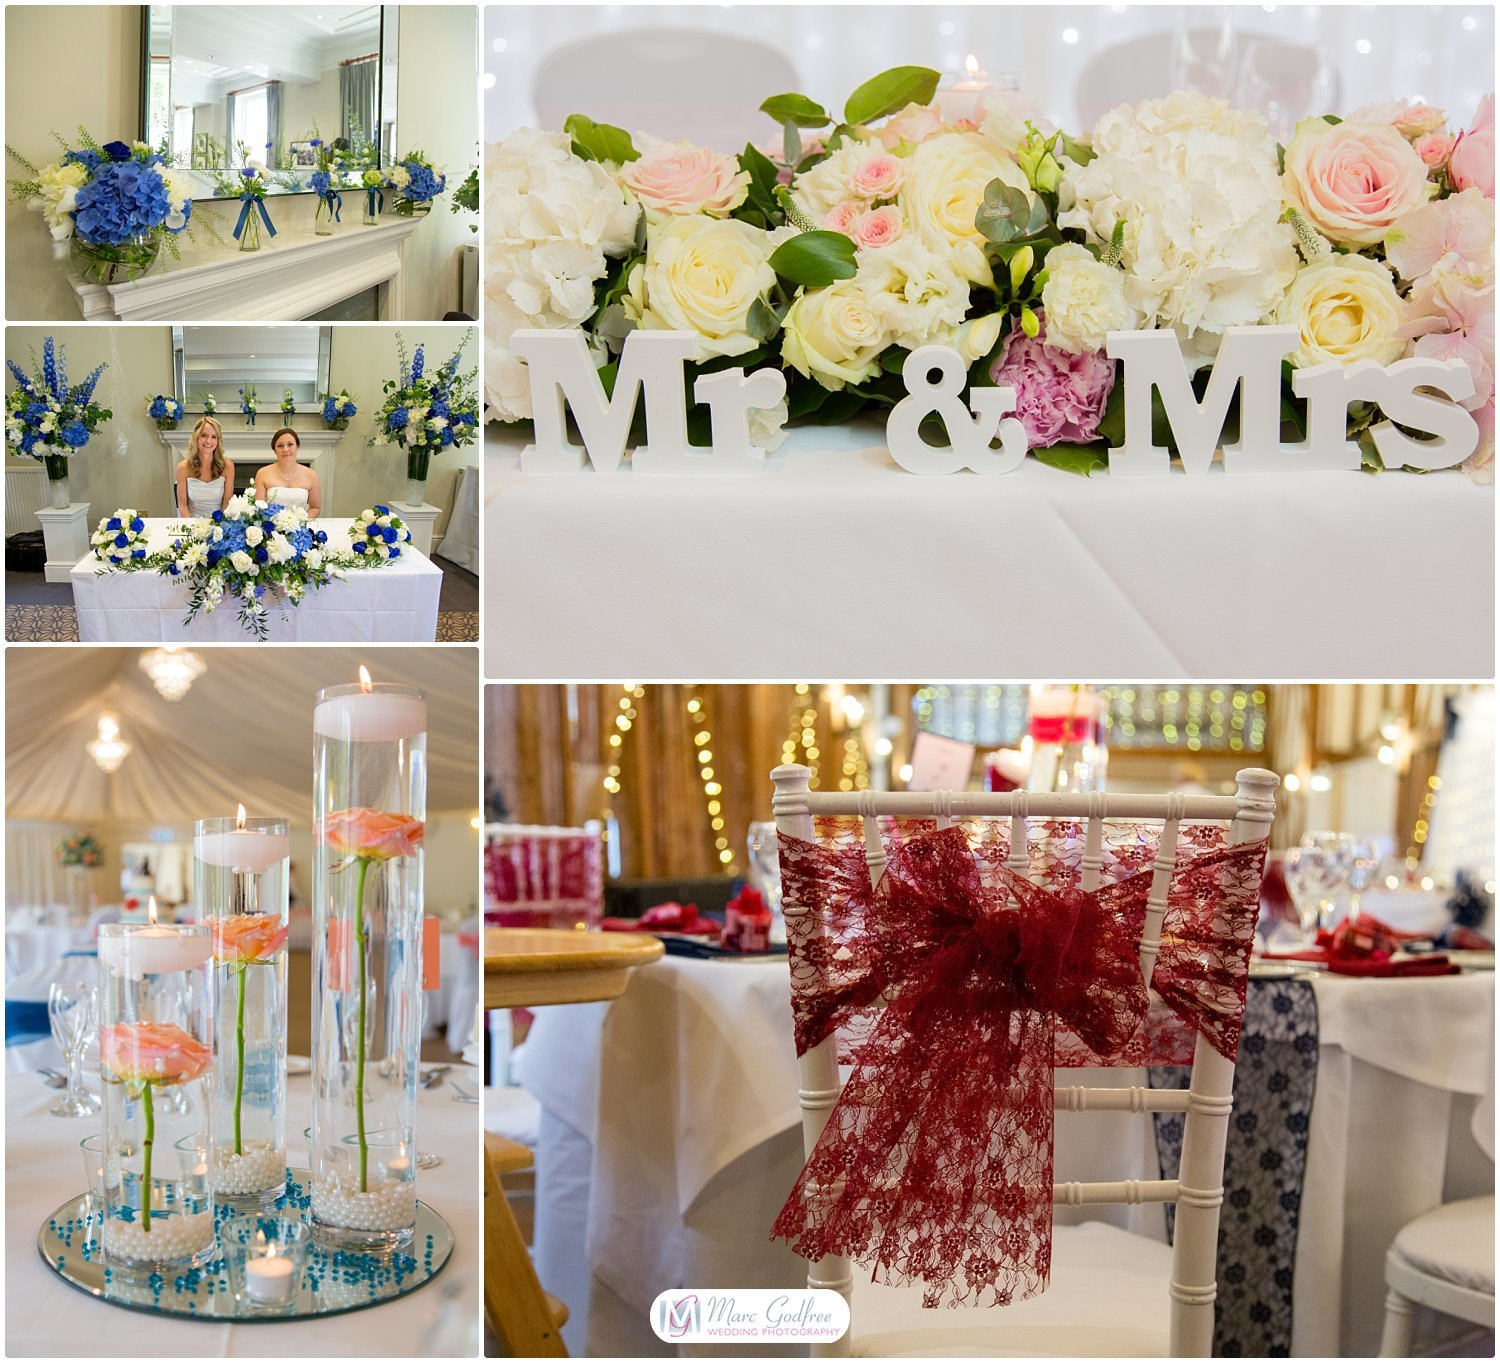 How to choose a wedding theme - Delve a little deeper